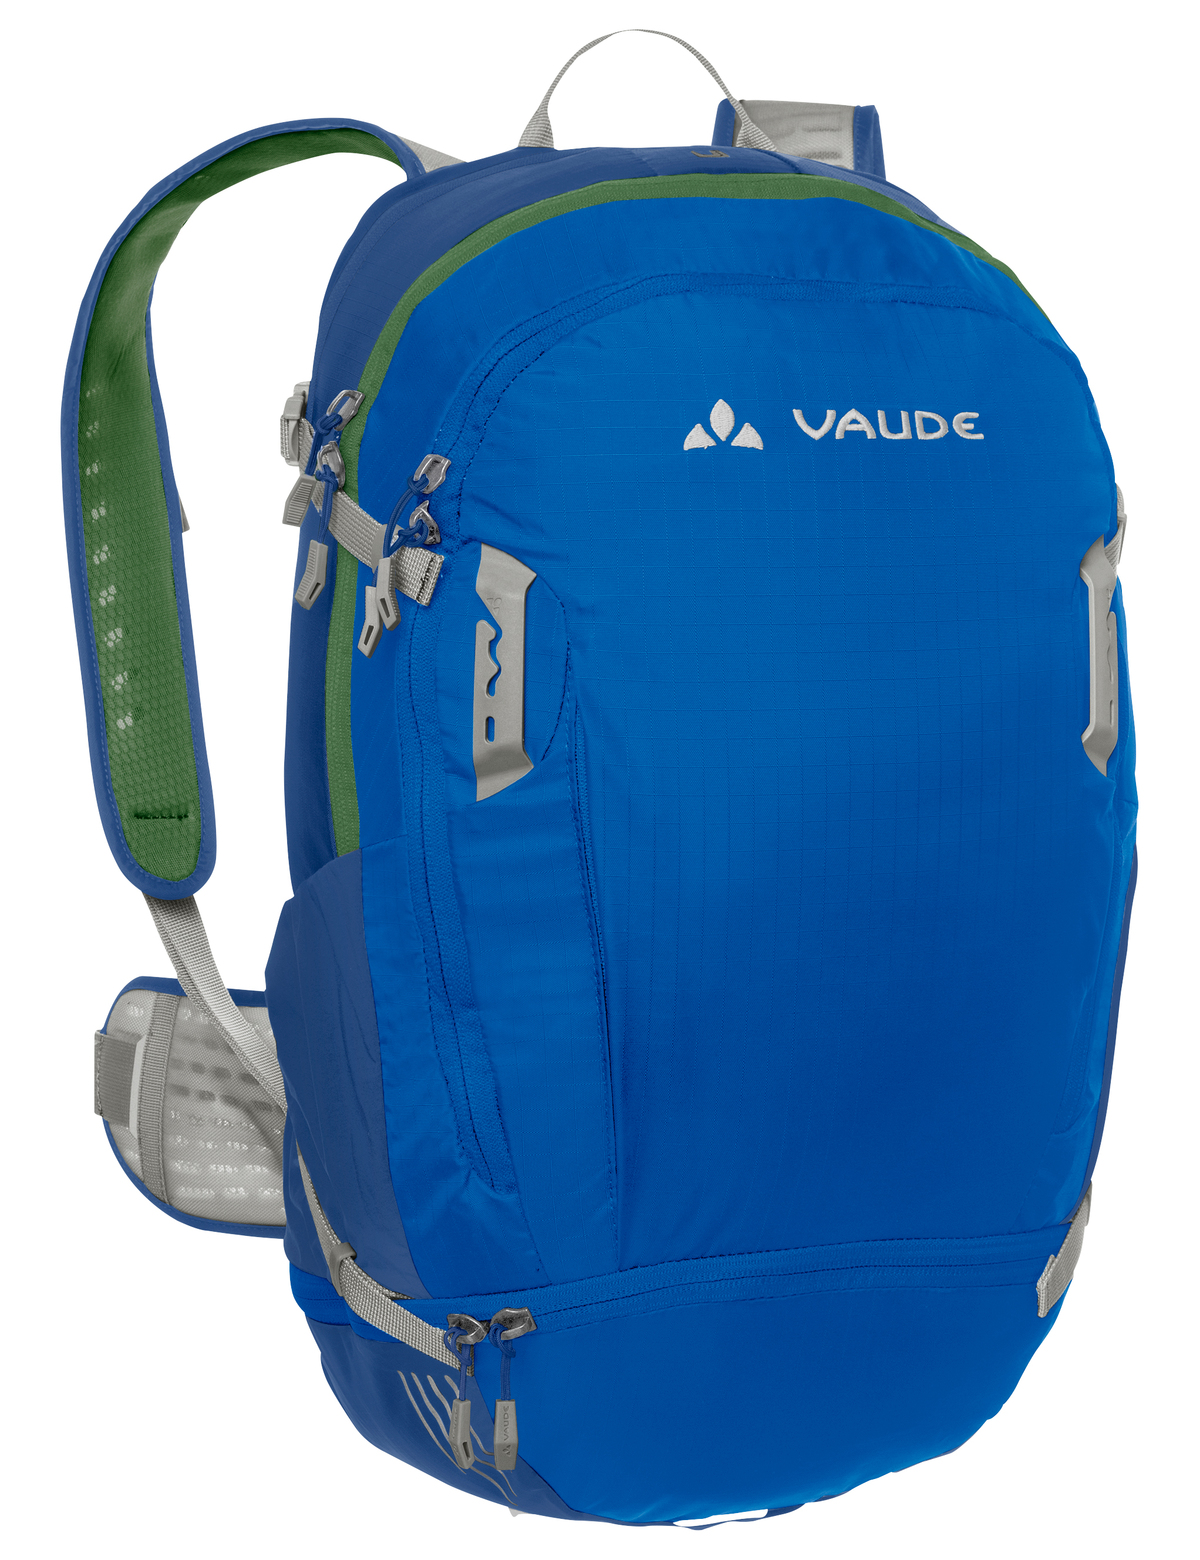 VAUDE Bike Alpin 30+5 hydro blue/royal  - VAUDE Bike Alpin 30+5 hydro blue/royal